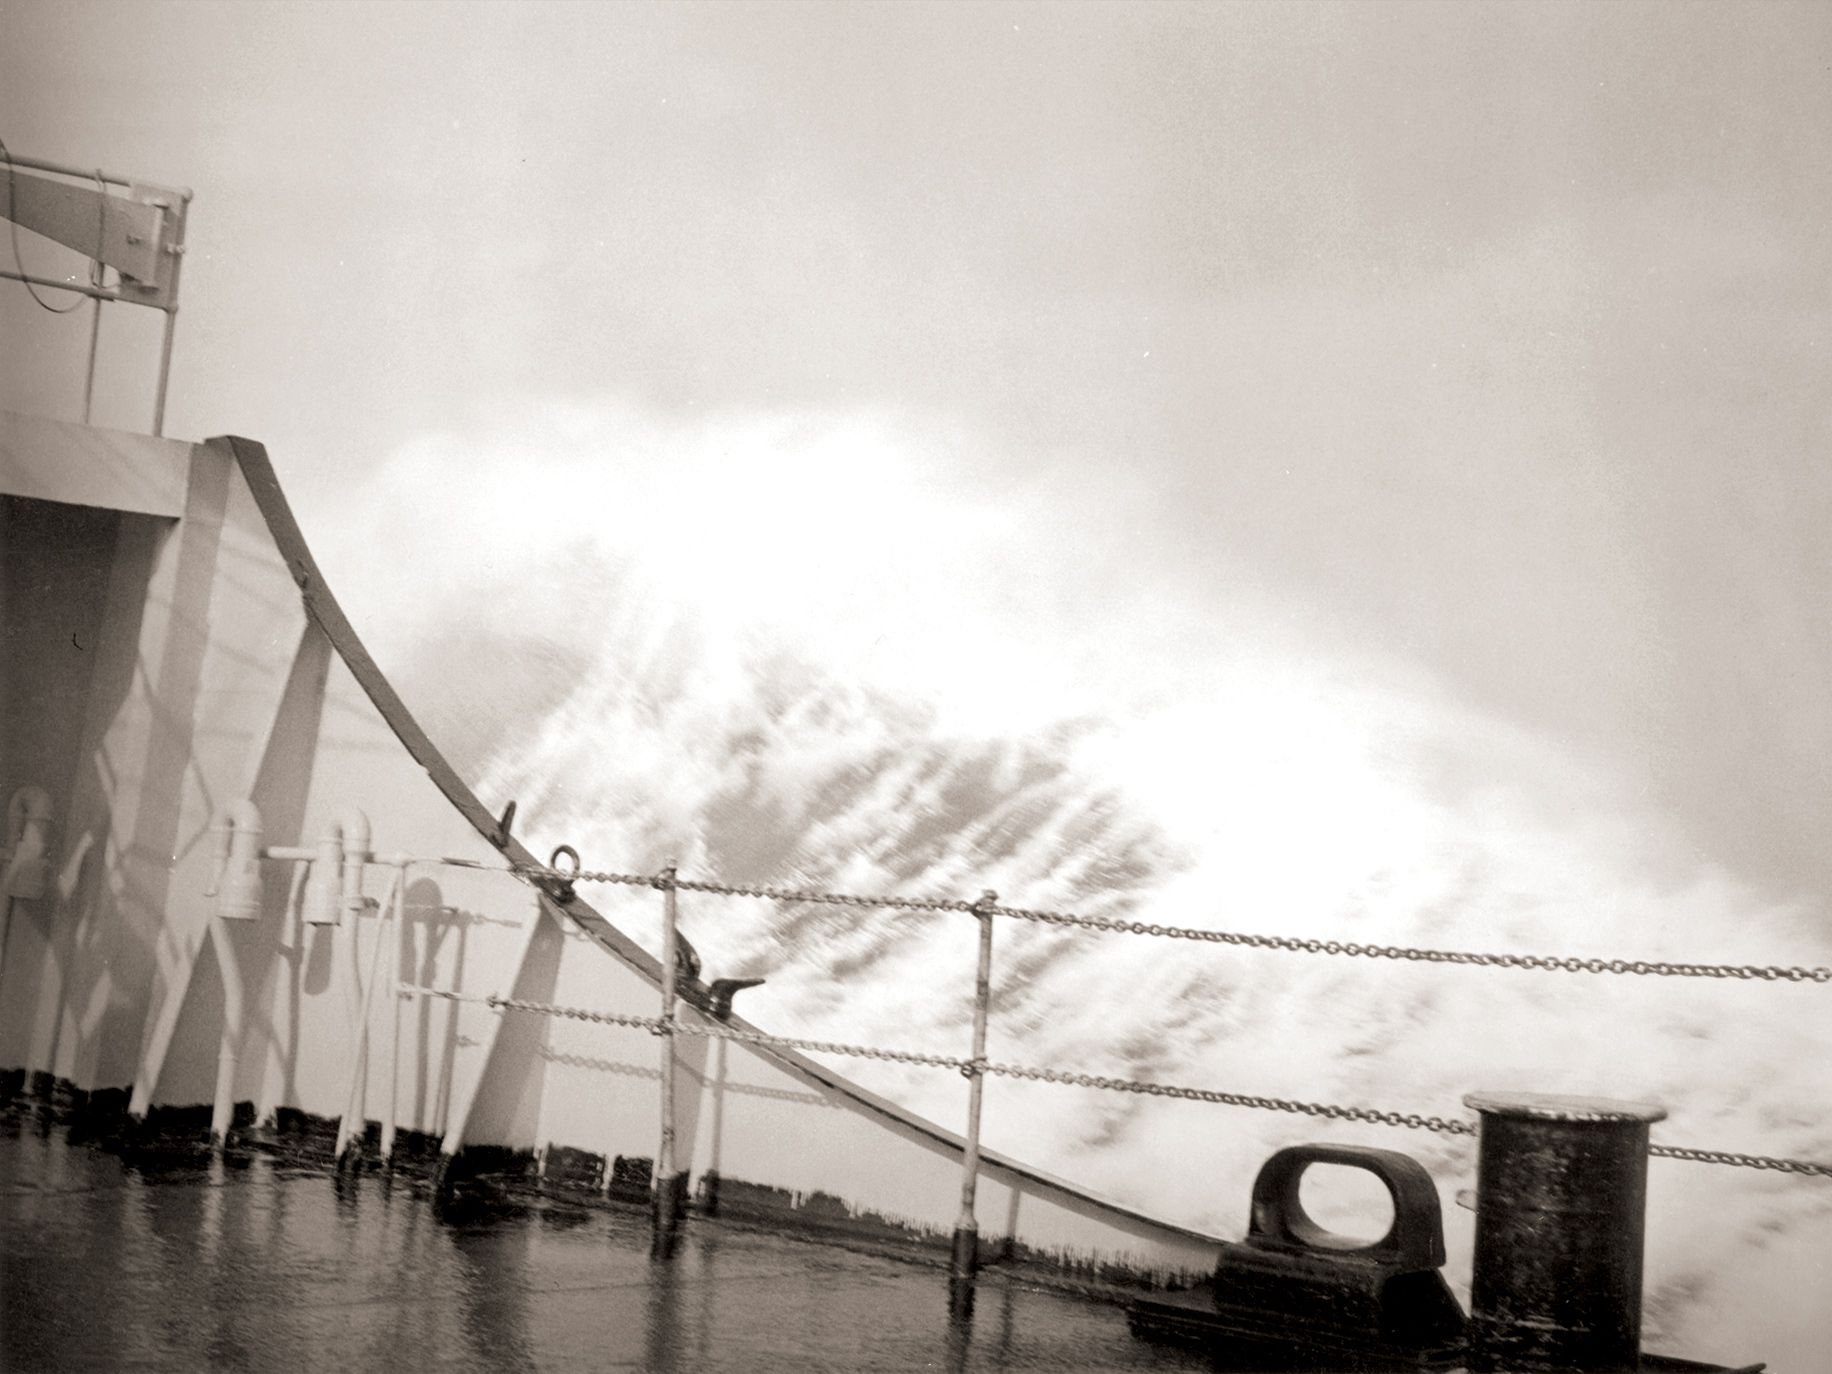 The storm lashes the deck of the S.S. Marine Flier, a former World War II freighter, as it carries the horses to the U.S.